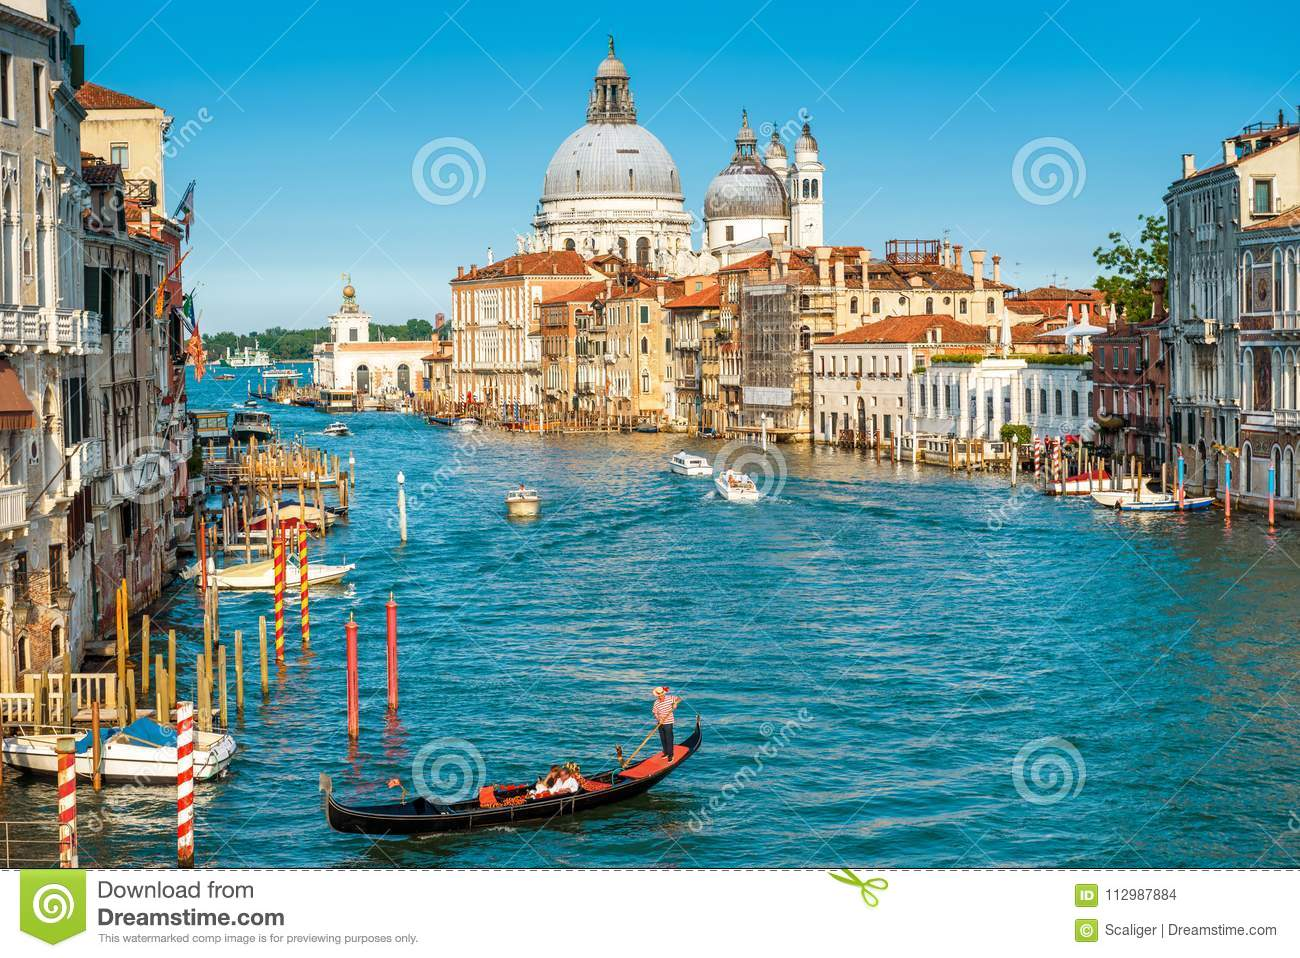 Gondola with tourists sails along the Grand Canal in Venice, Italy